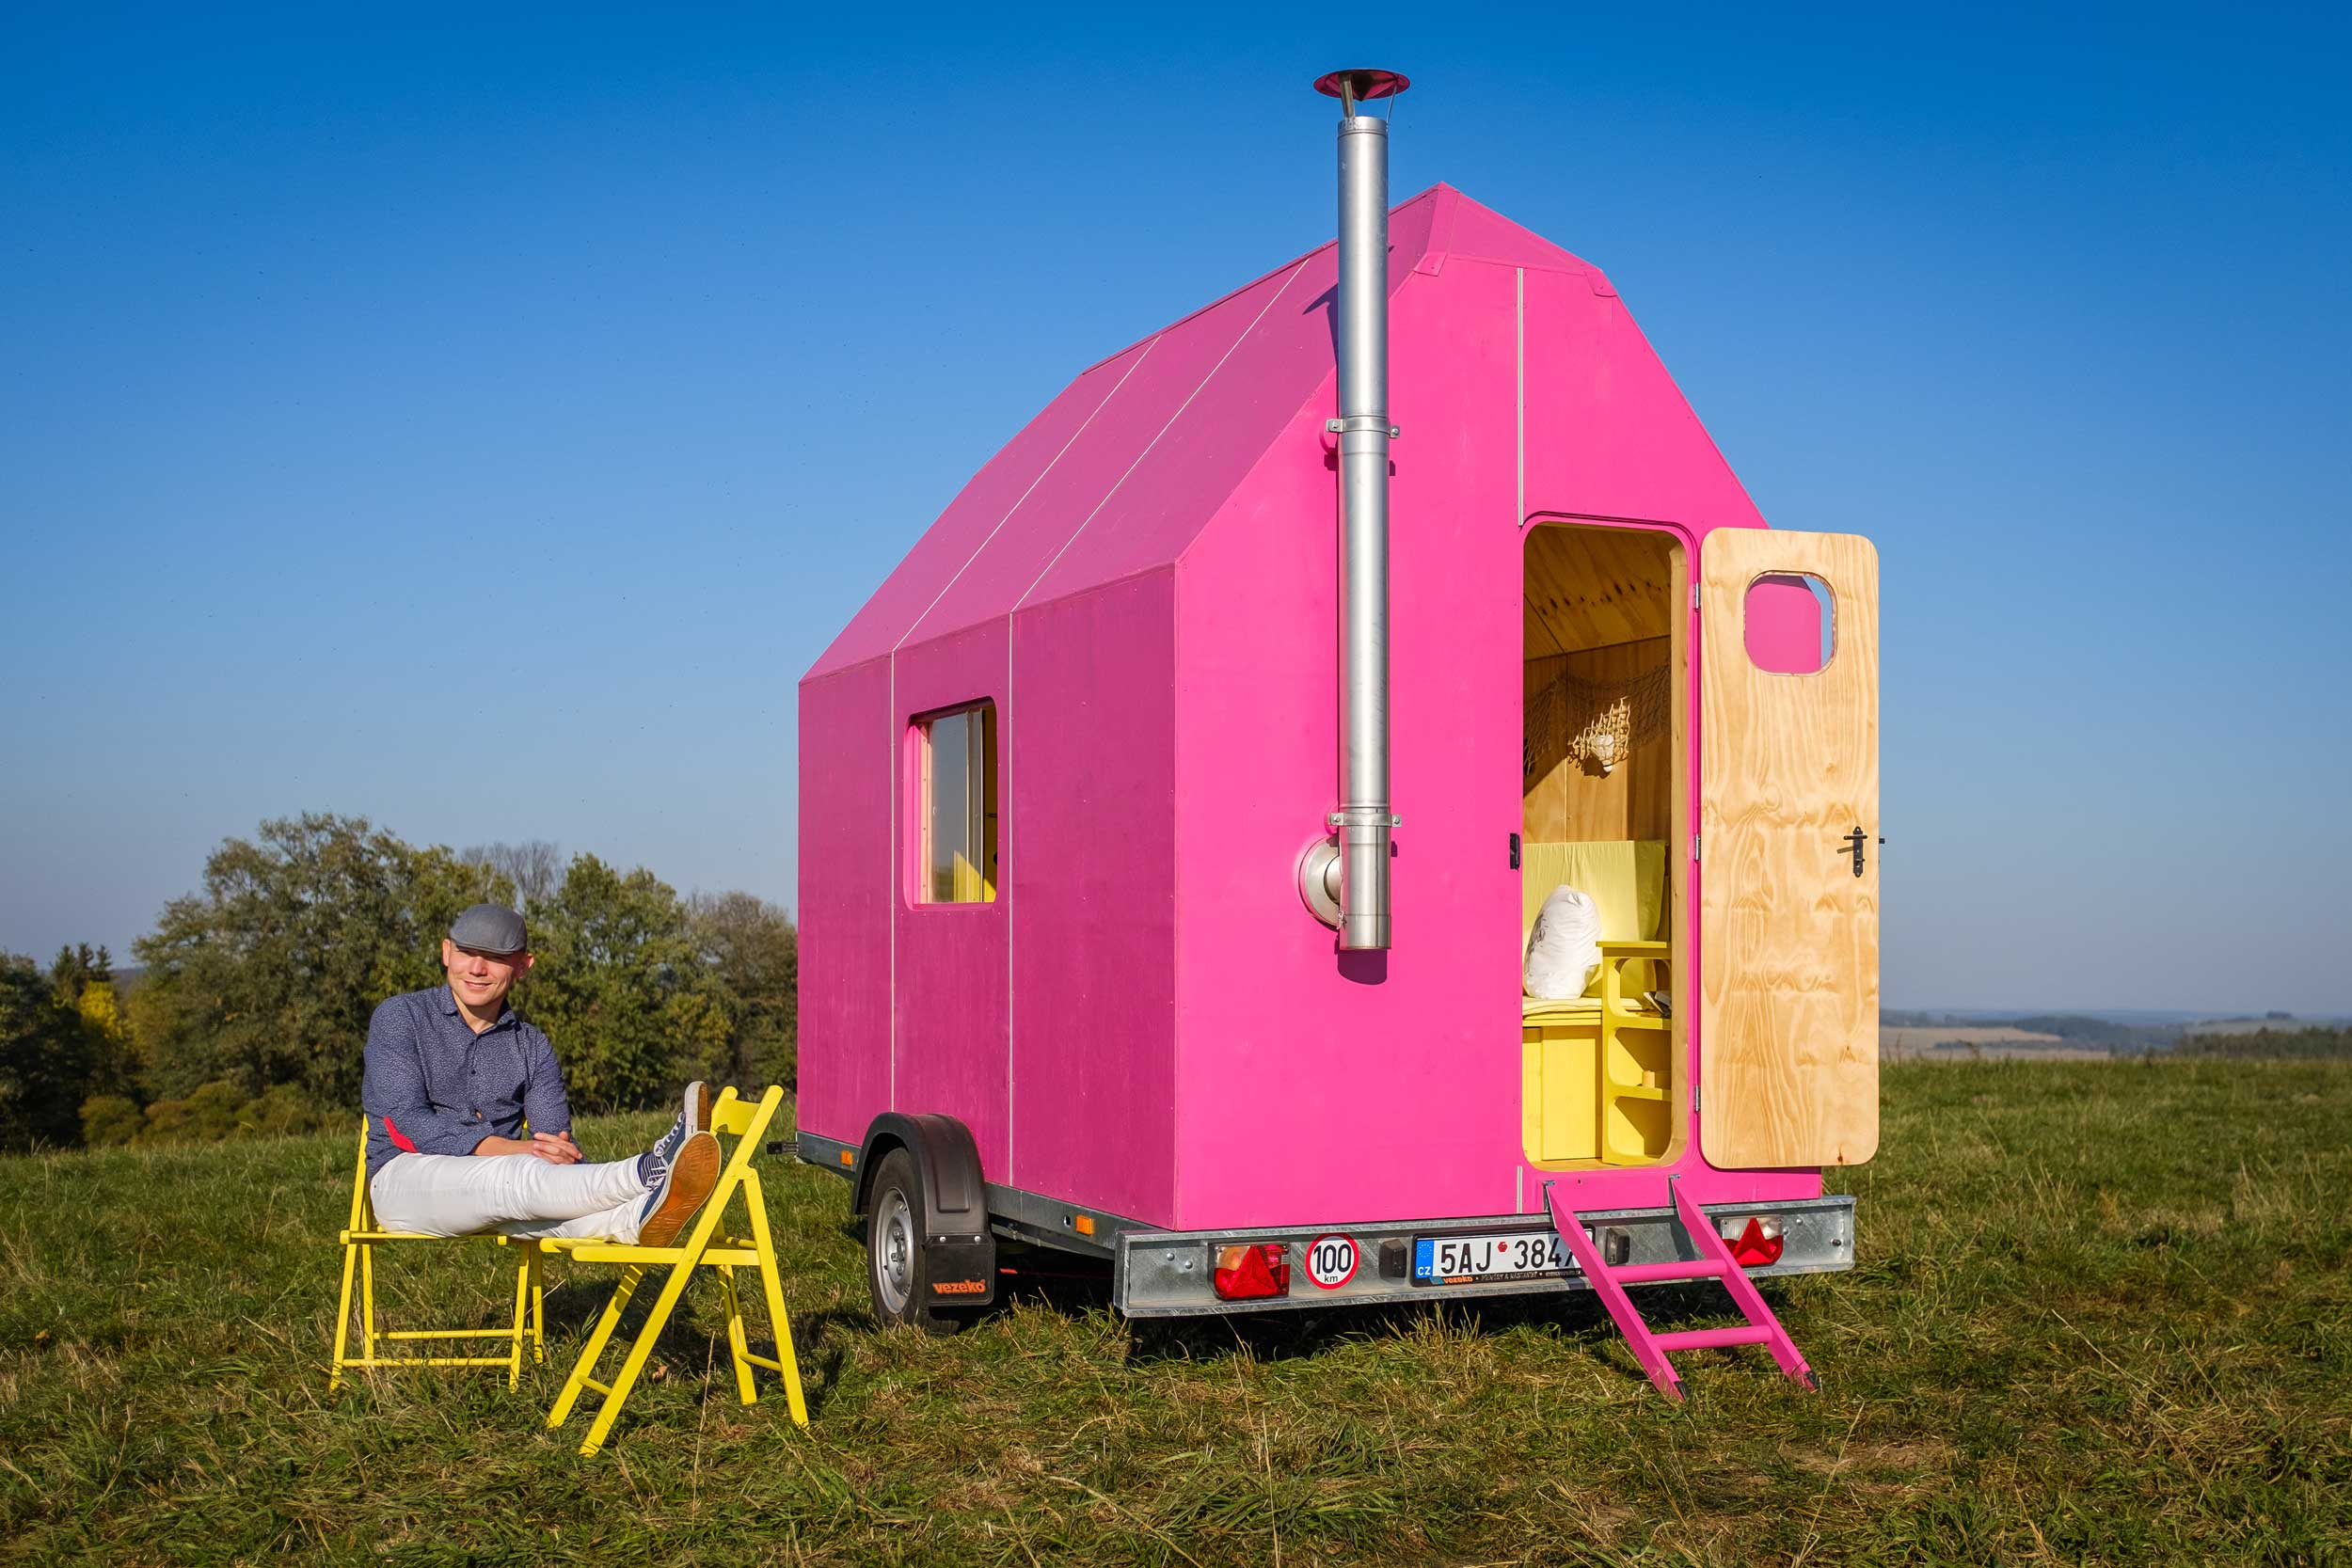 Bright pink small home in field